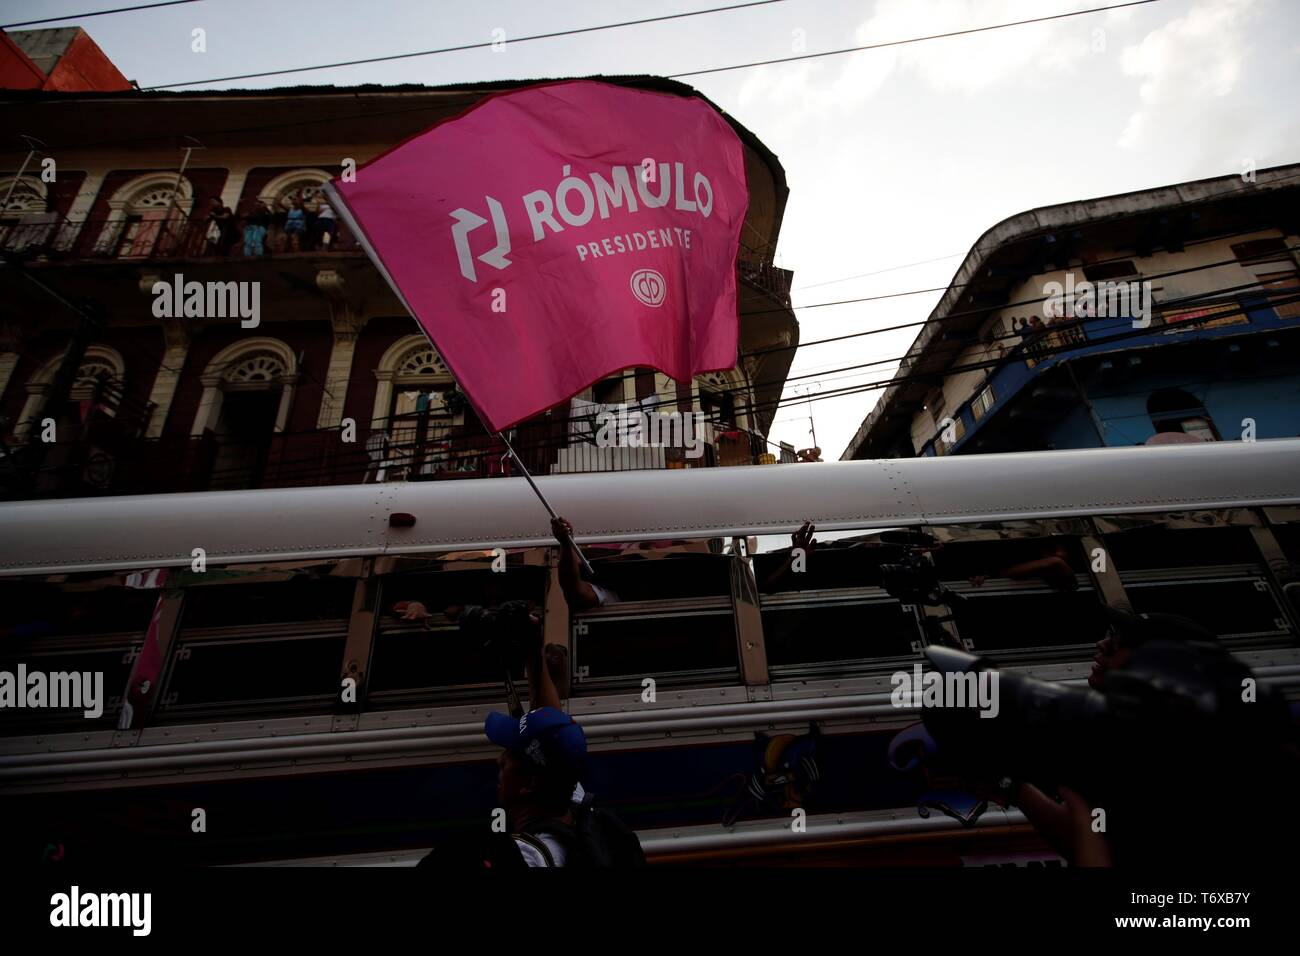 """Panamanians attend the closing of campaign of the candidate for the Presidency of the opposition Democratic Party of Panama (CD), Romulo Roux, in Panama City, Panama, 02 May 2019. Roux, one of the favorites to win the presidential elections in Panama closed his campaign with the promise of returning the bonanza to the country and ending the """"disaster"""" attributed to the current Government of Juan Carlos Varela and also the historic party PRD, whose standard-bearer is its main rival in the race. EFE/Bienvenido Velasco Stock Photo"""